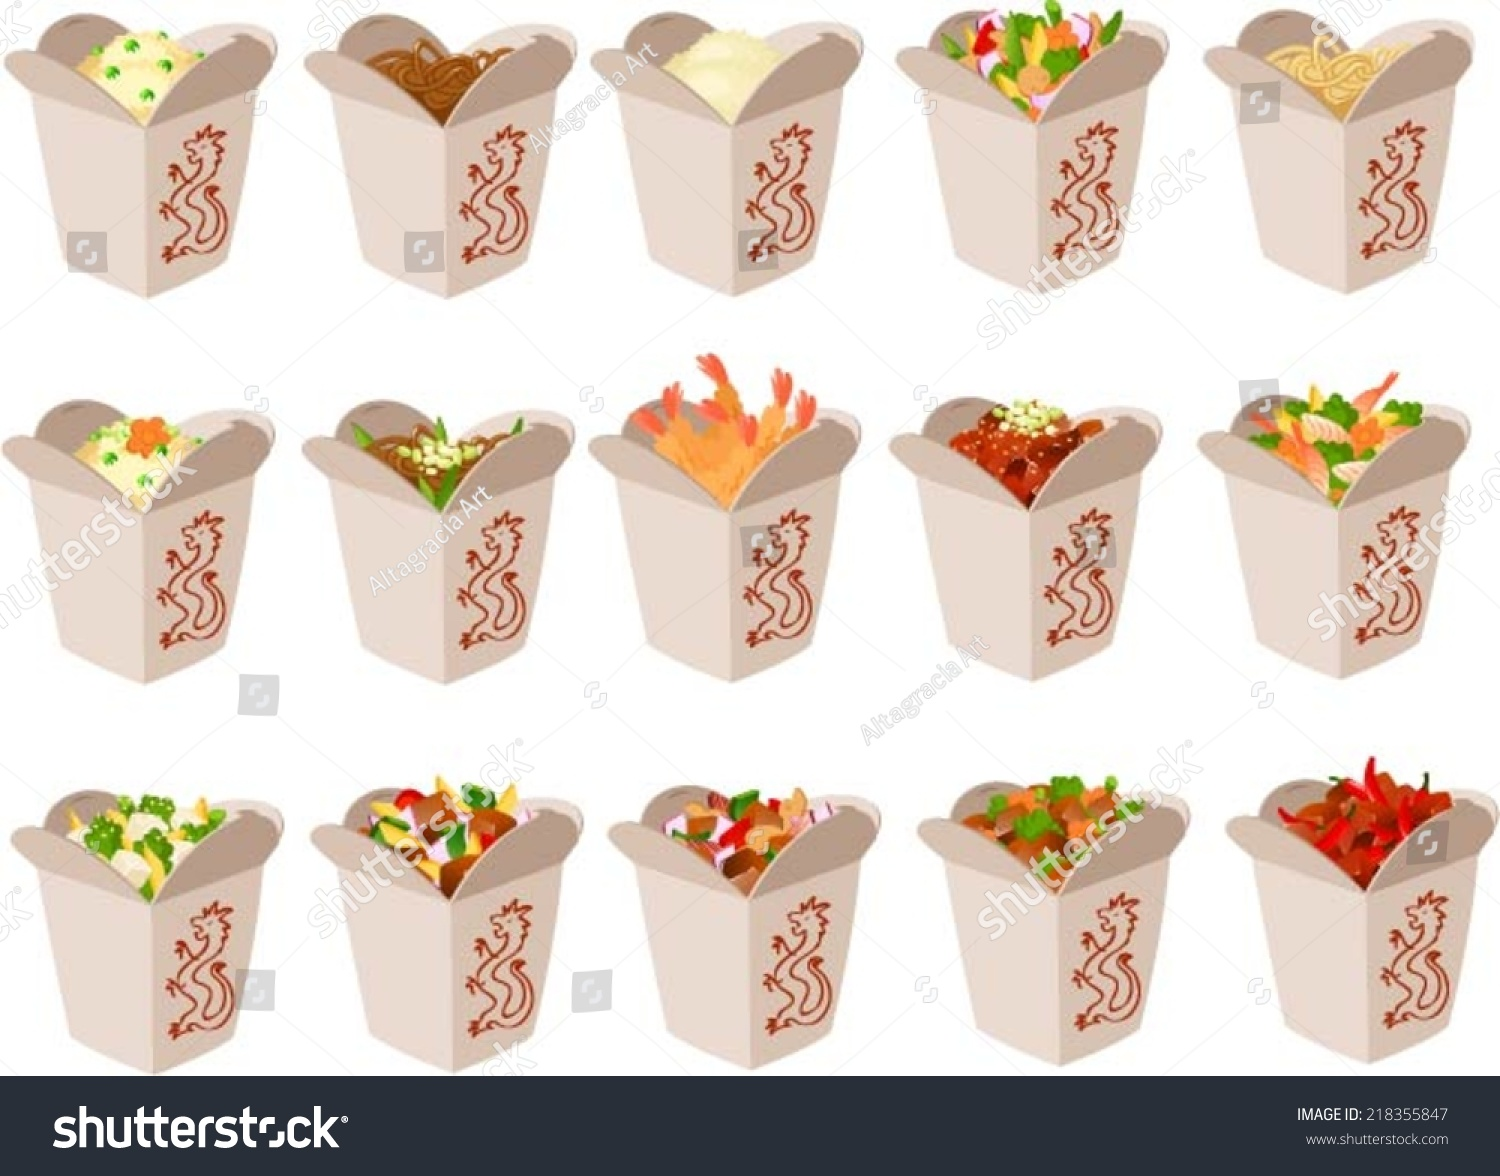 Vector Illustration Chinese Food Take Out Stock Vector 218355847 ...